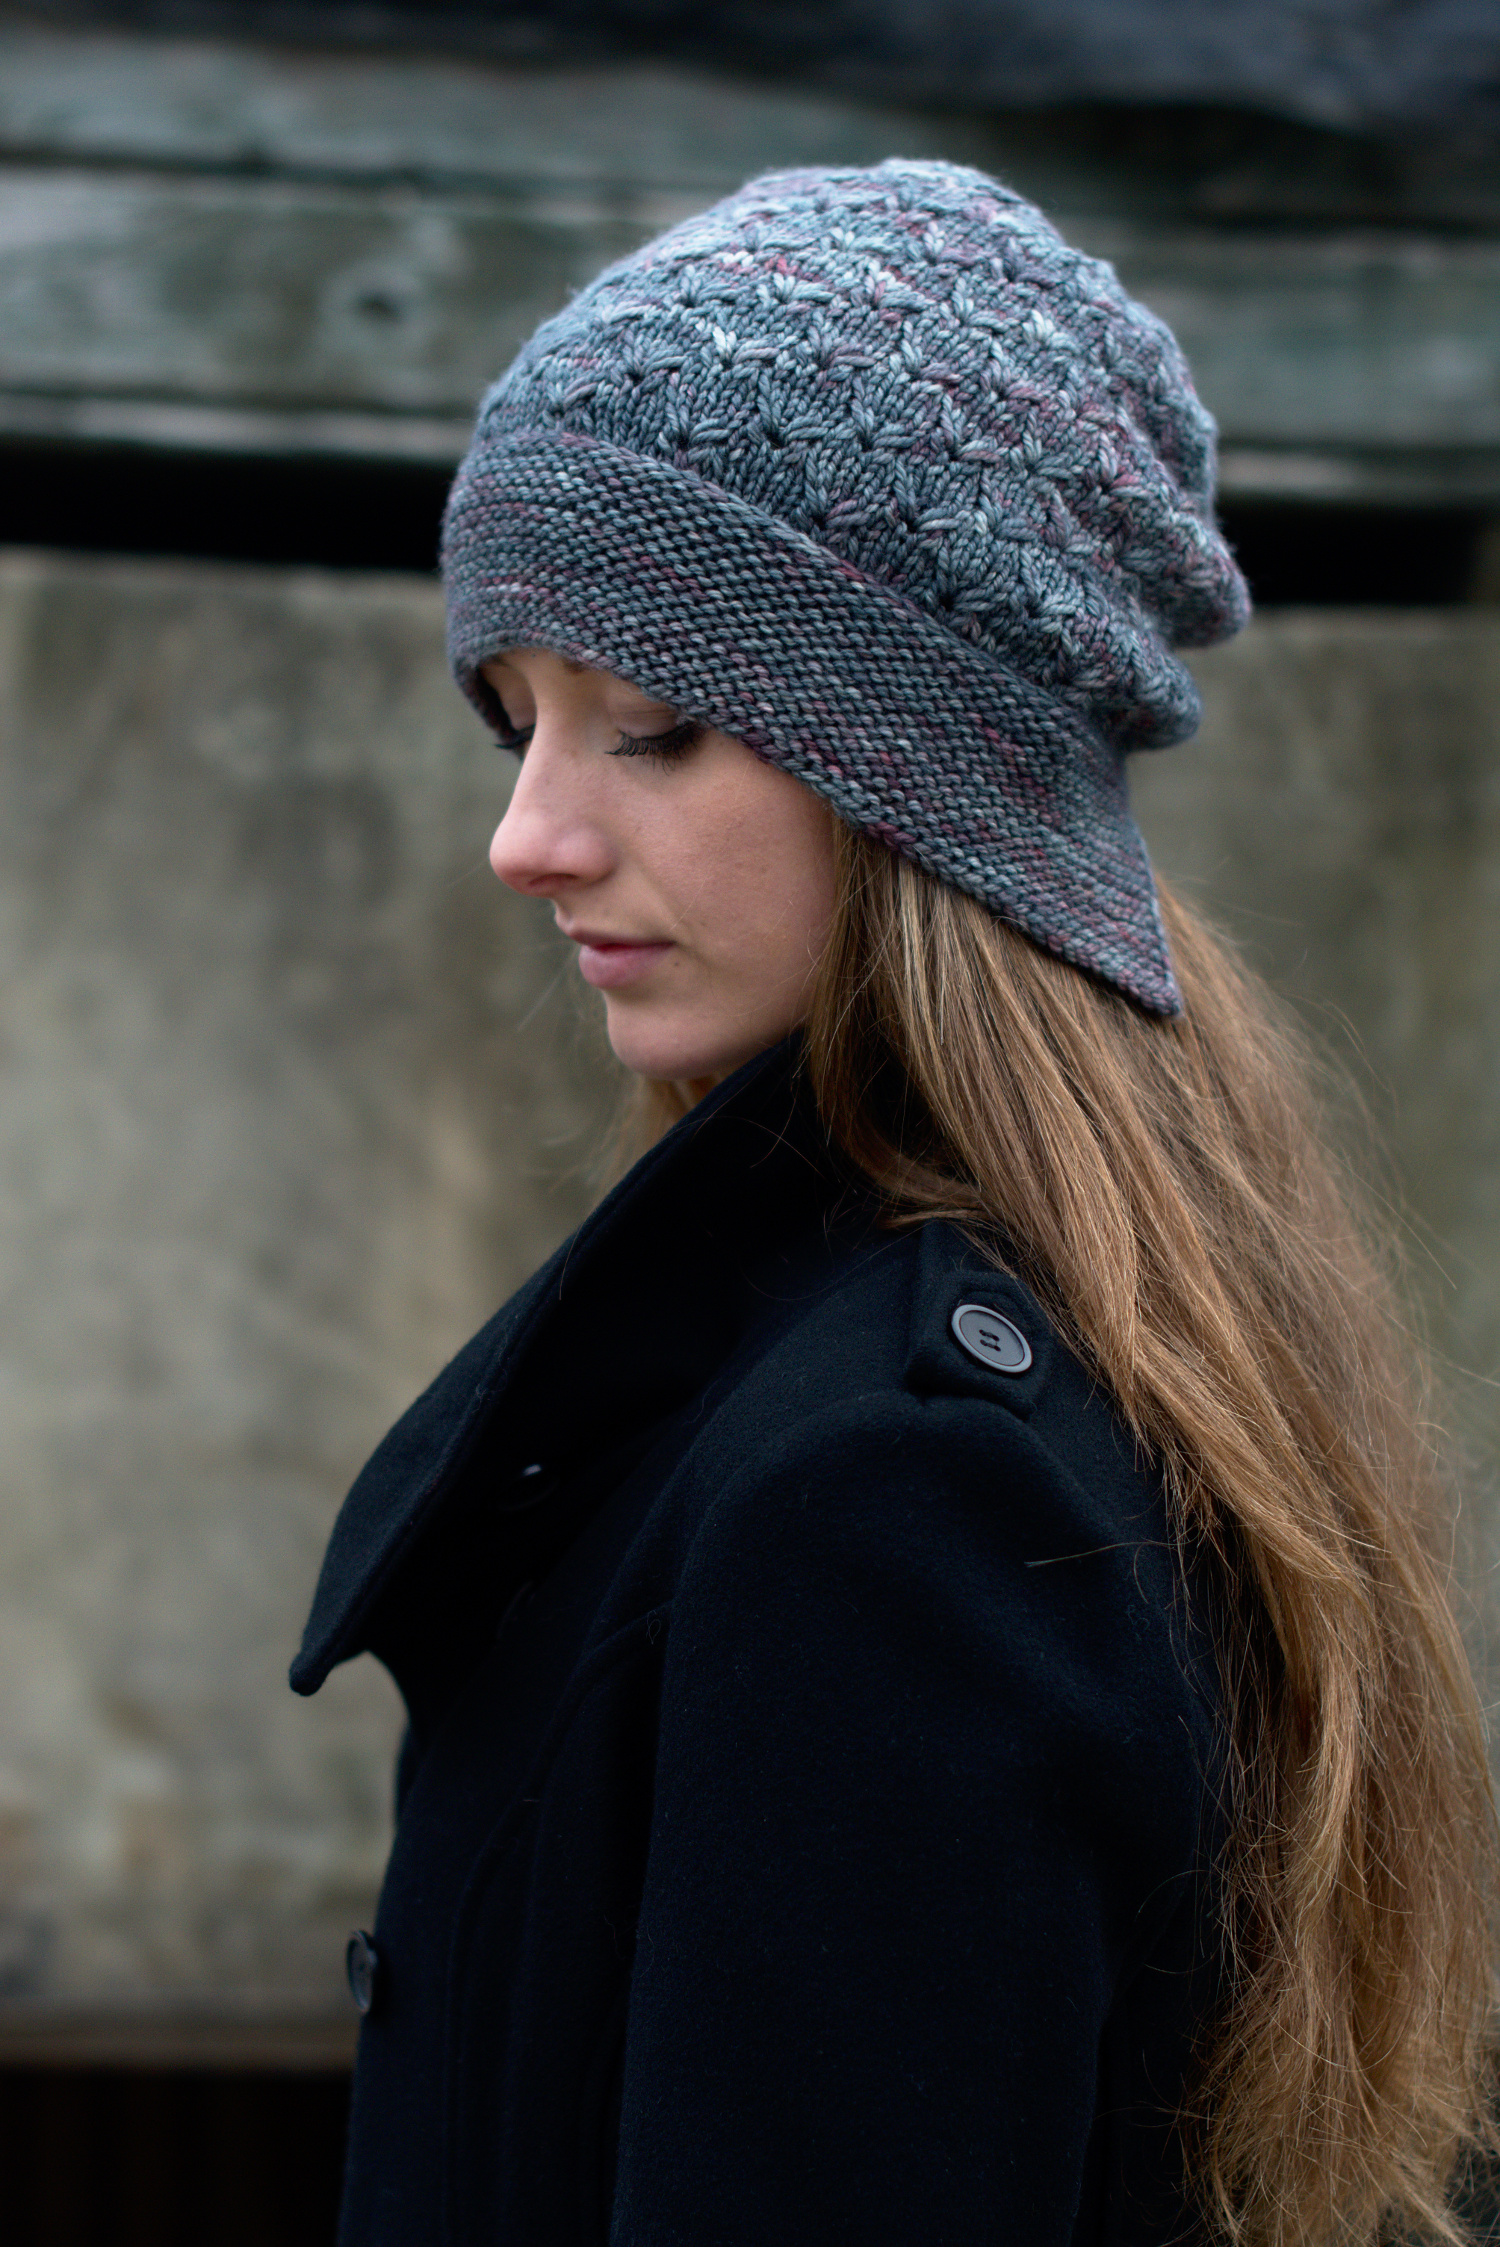 Lifted slouchy bonnet hat hand knitting pattern for worsted weight yarn